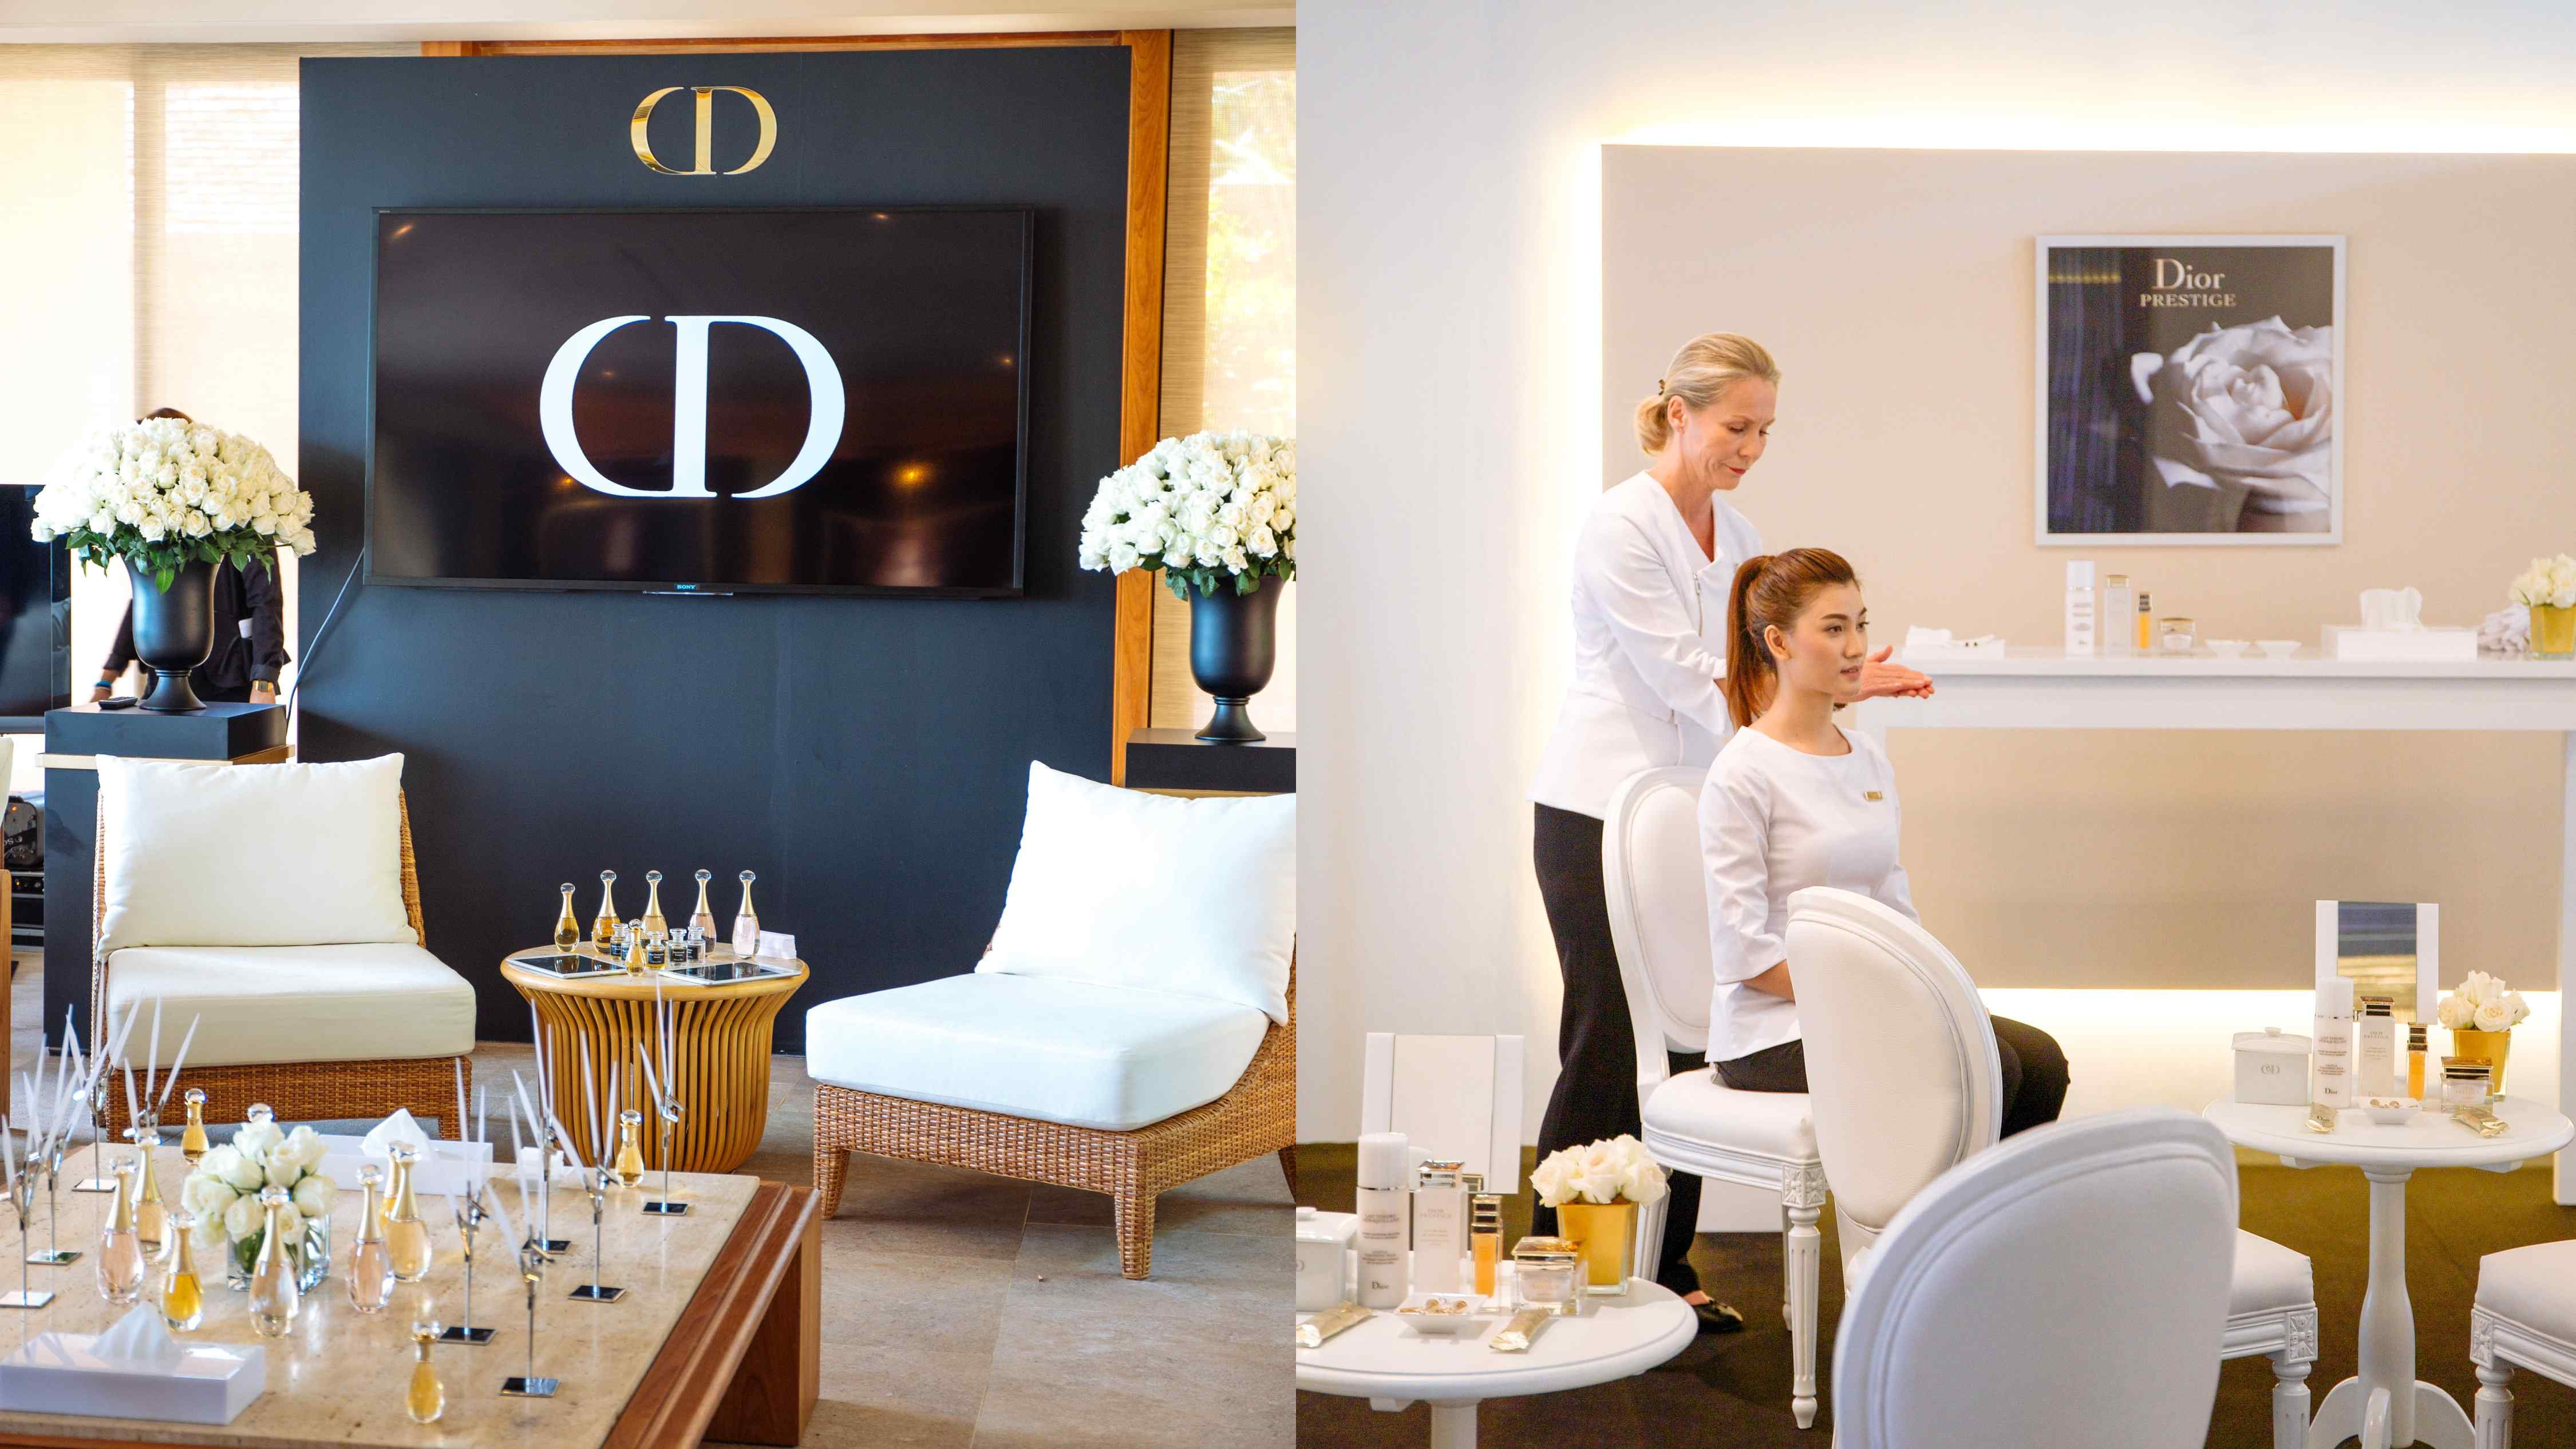 dior-group-event-luxury-resort-spa-hotel-5-start-phuket-best-world